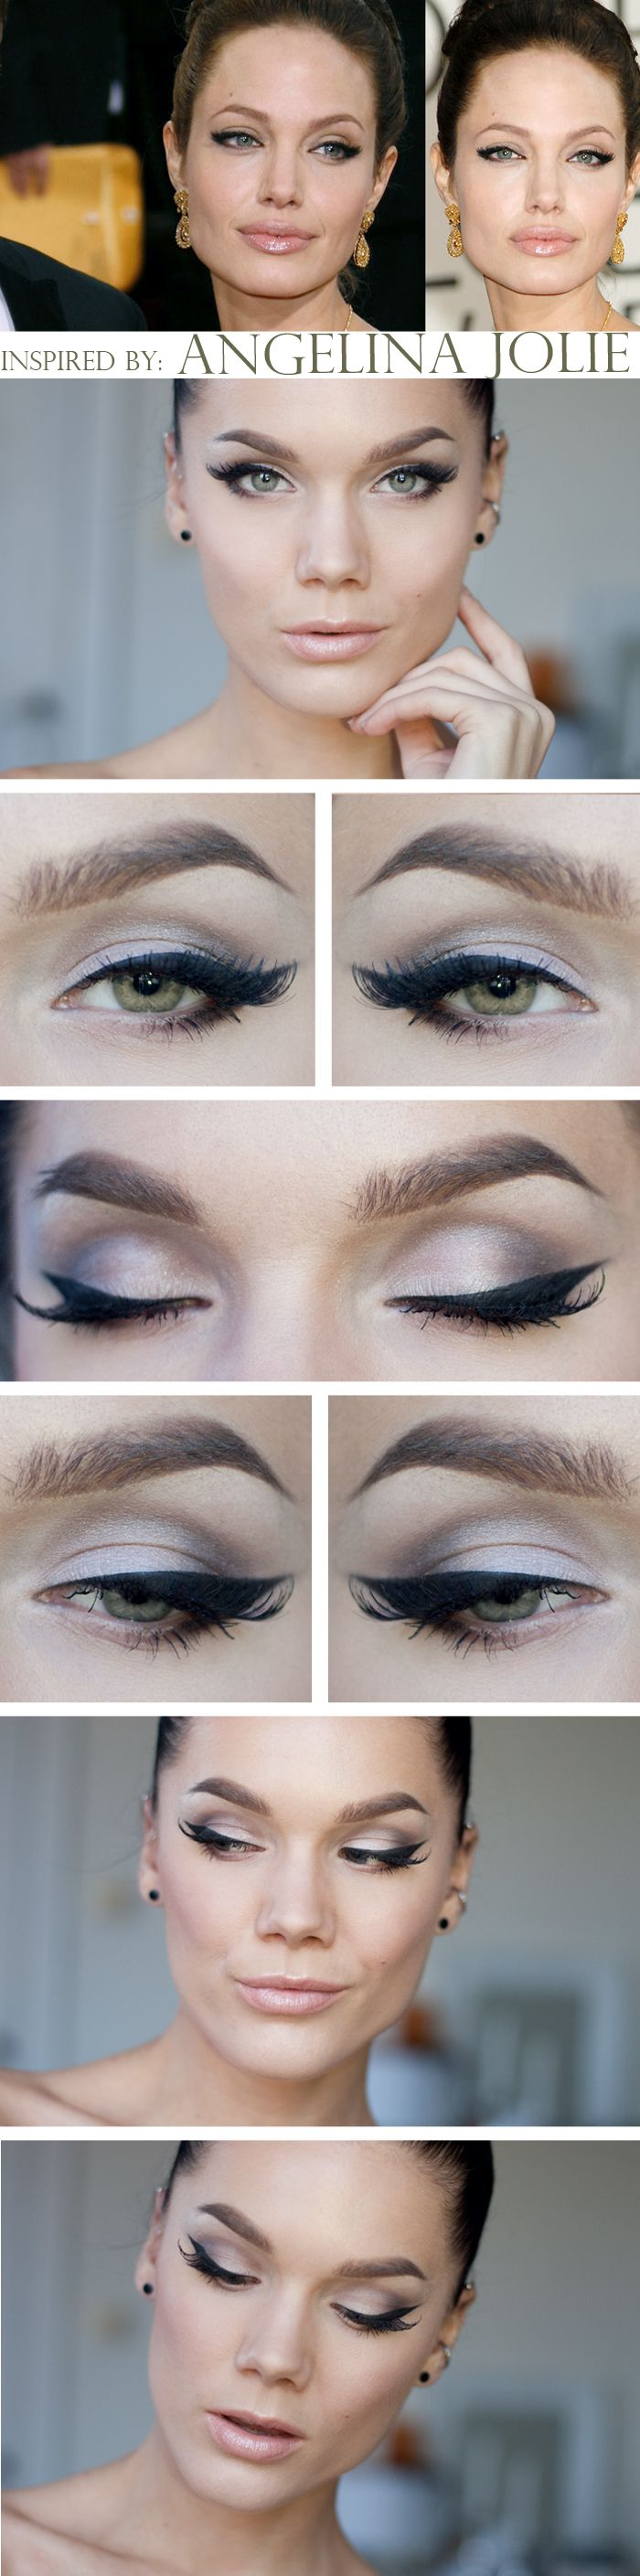 Todays look – Inspired by: Angelina Jolies Cat-eyes!